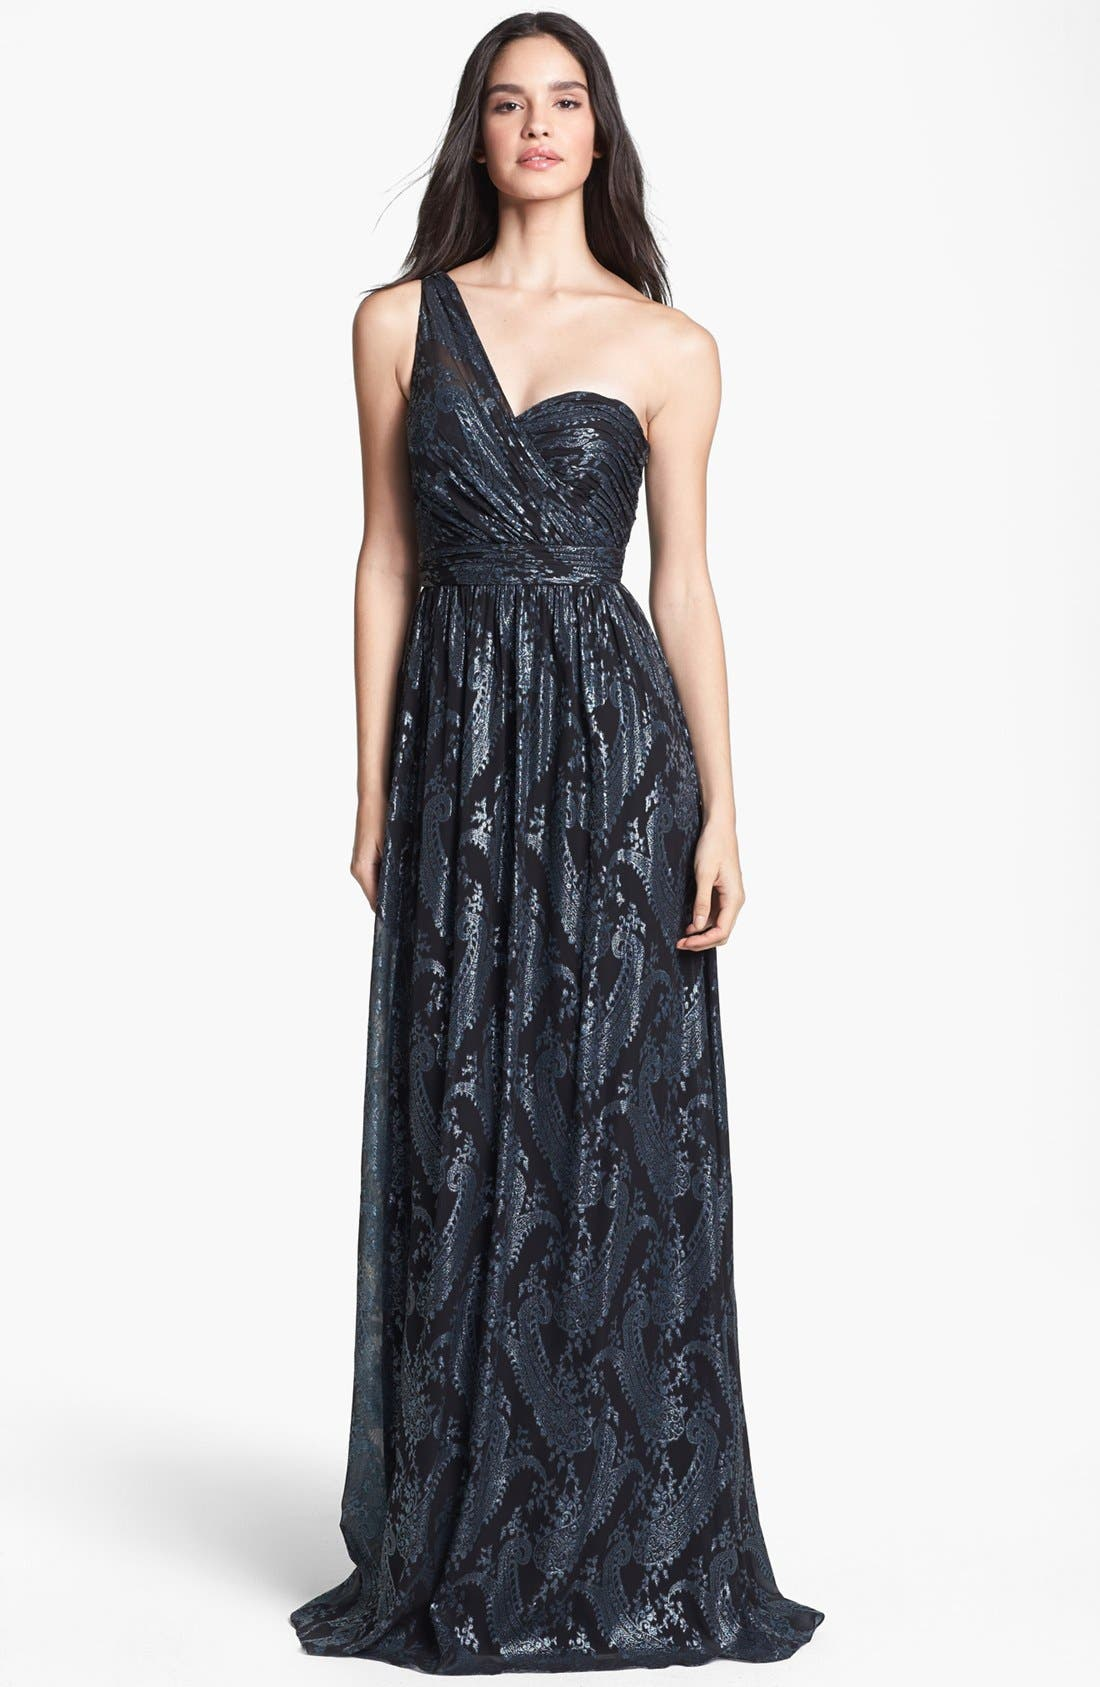 Main Image - ERIN erin fetherston 'Catalina' Metallic One-Shoulder Gown